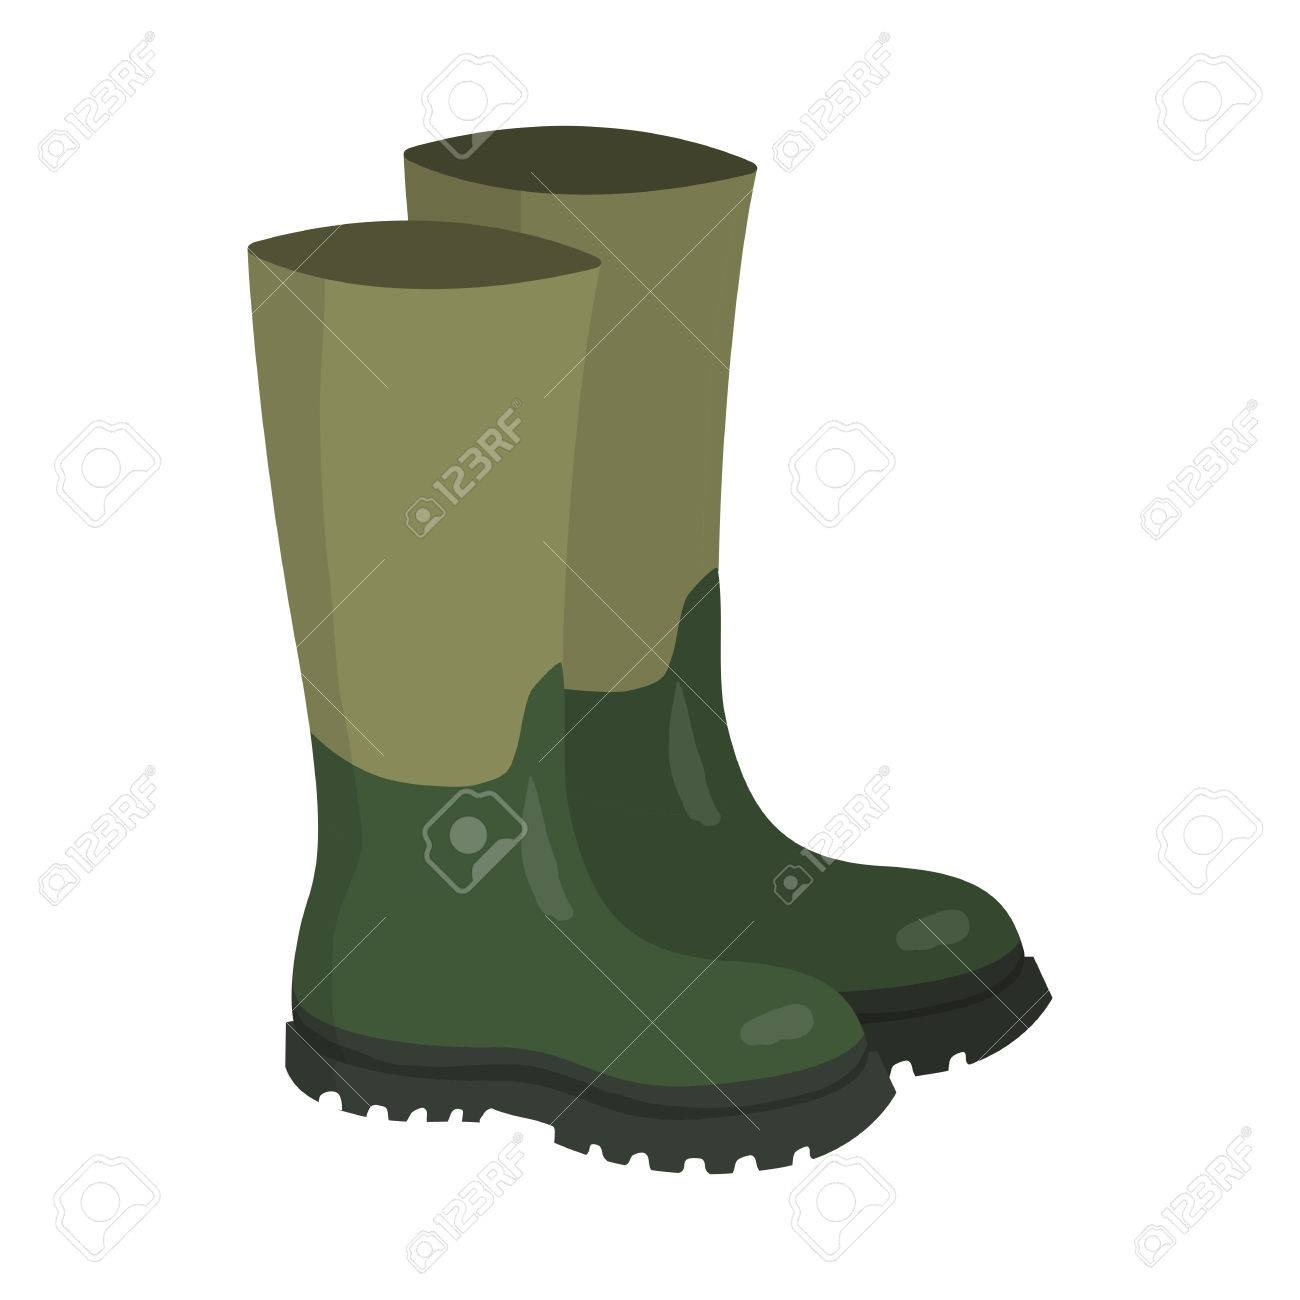 Pair of green rubber hunters and fisherman high boots. Cartoon vector illustration. - 60619244